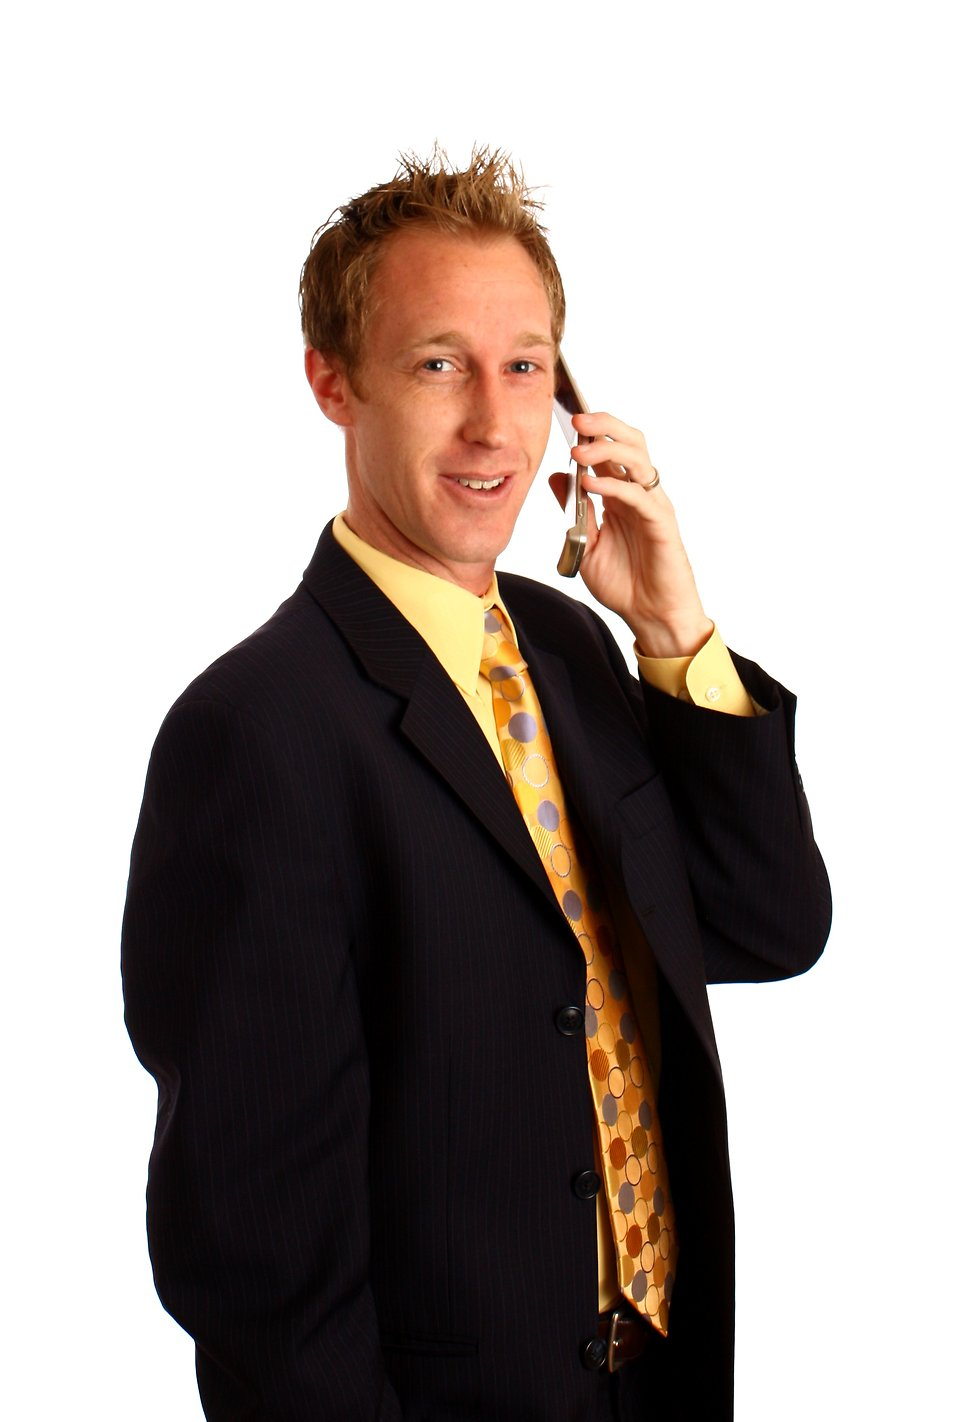 A young businessman in a suit talking on a cell phone : Free Stock Photo